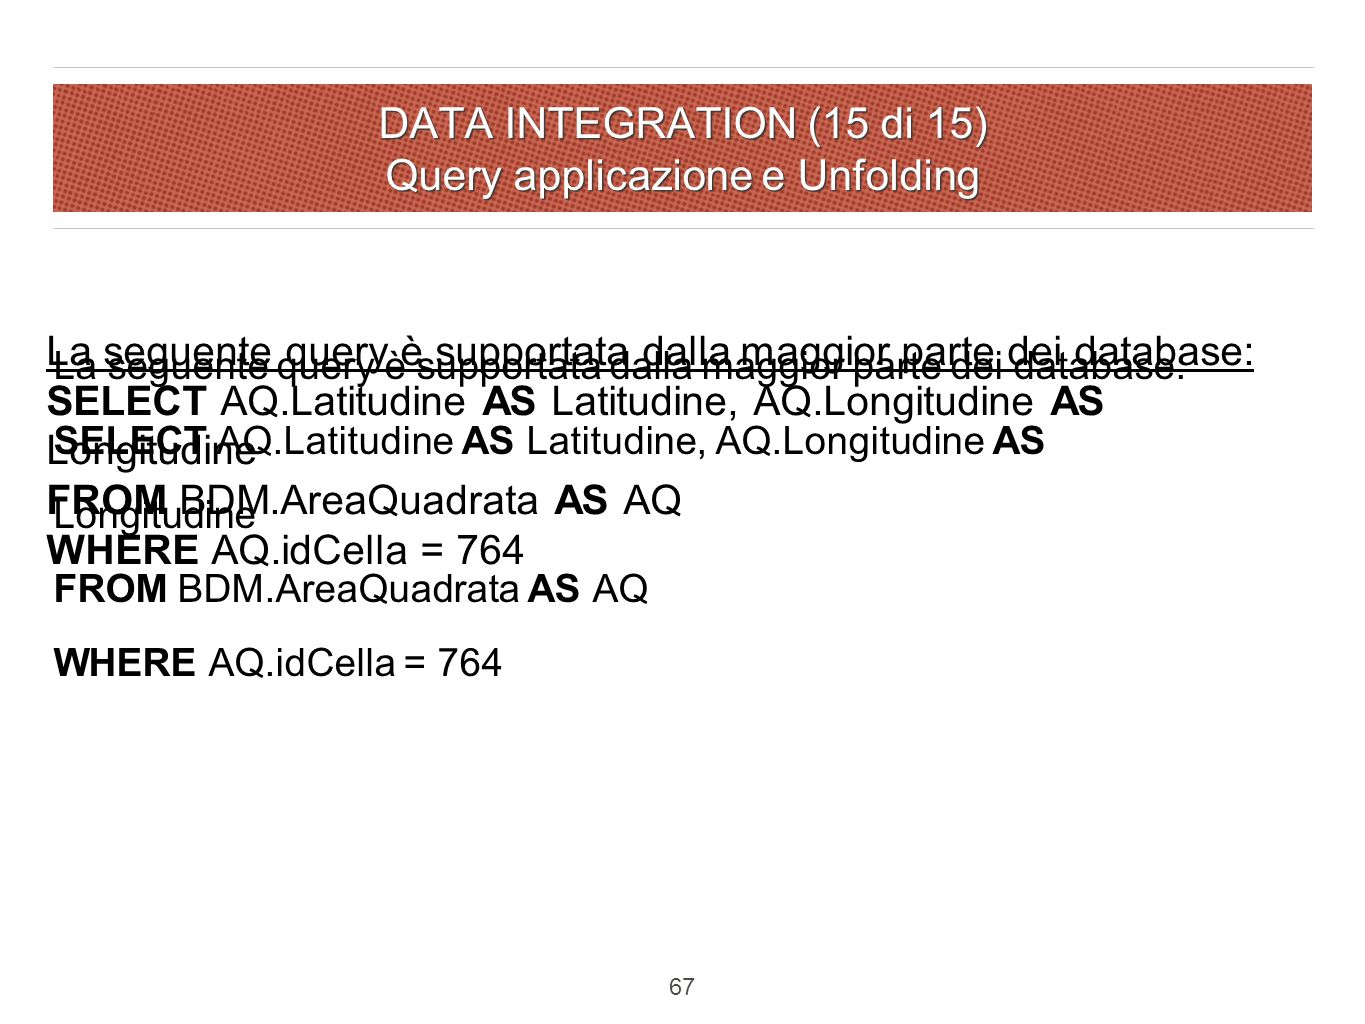 DATA INTEGRATION (15 di 15) Query applicazione e Unfolding La seguente query è supportata dalla maggior parte dei database: SELECT AQ.Latitudine AS Latitudine, AQ.Longitudine AS Longitudine FROM BDM.AreaQuadrata AS AQ WHERE AQ.idCella = 764 67 La seguente query è supportata dalla maggior parte dei database: SELECT AQ.Latitudine AS Latitudine, AQ.Longitudine AS Longitudine FROM BDM.AreaQuadrata AS AQ WHERE AQ.idCella = 764